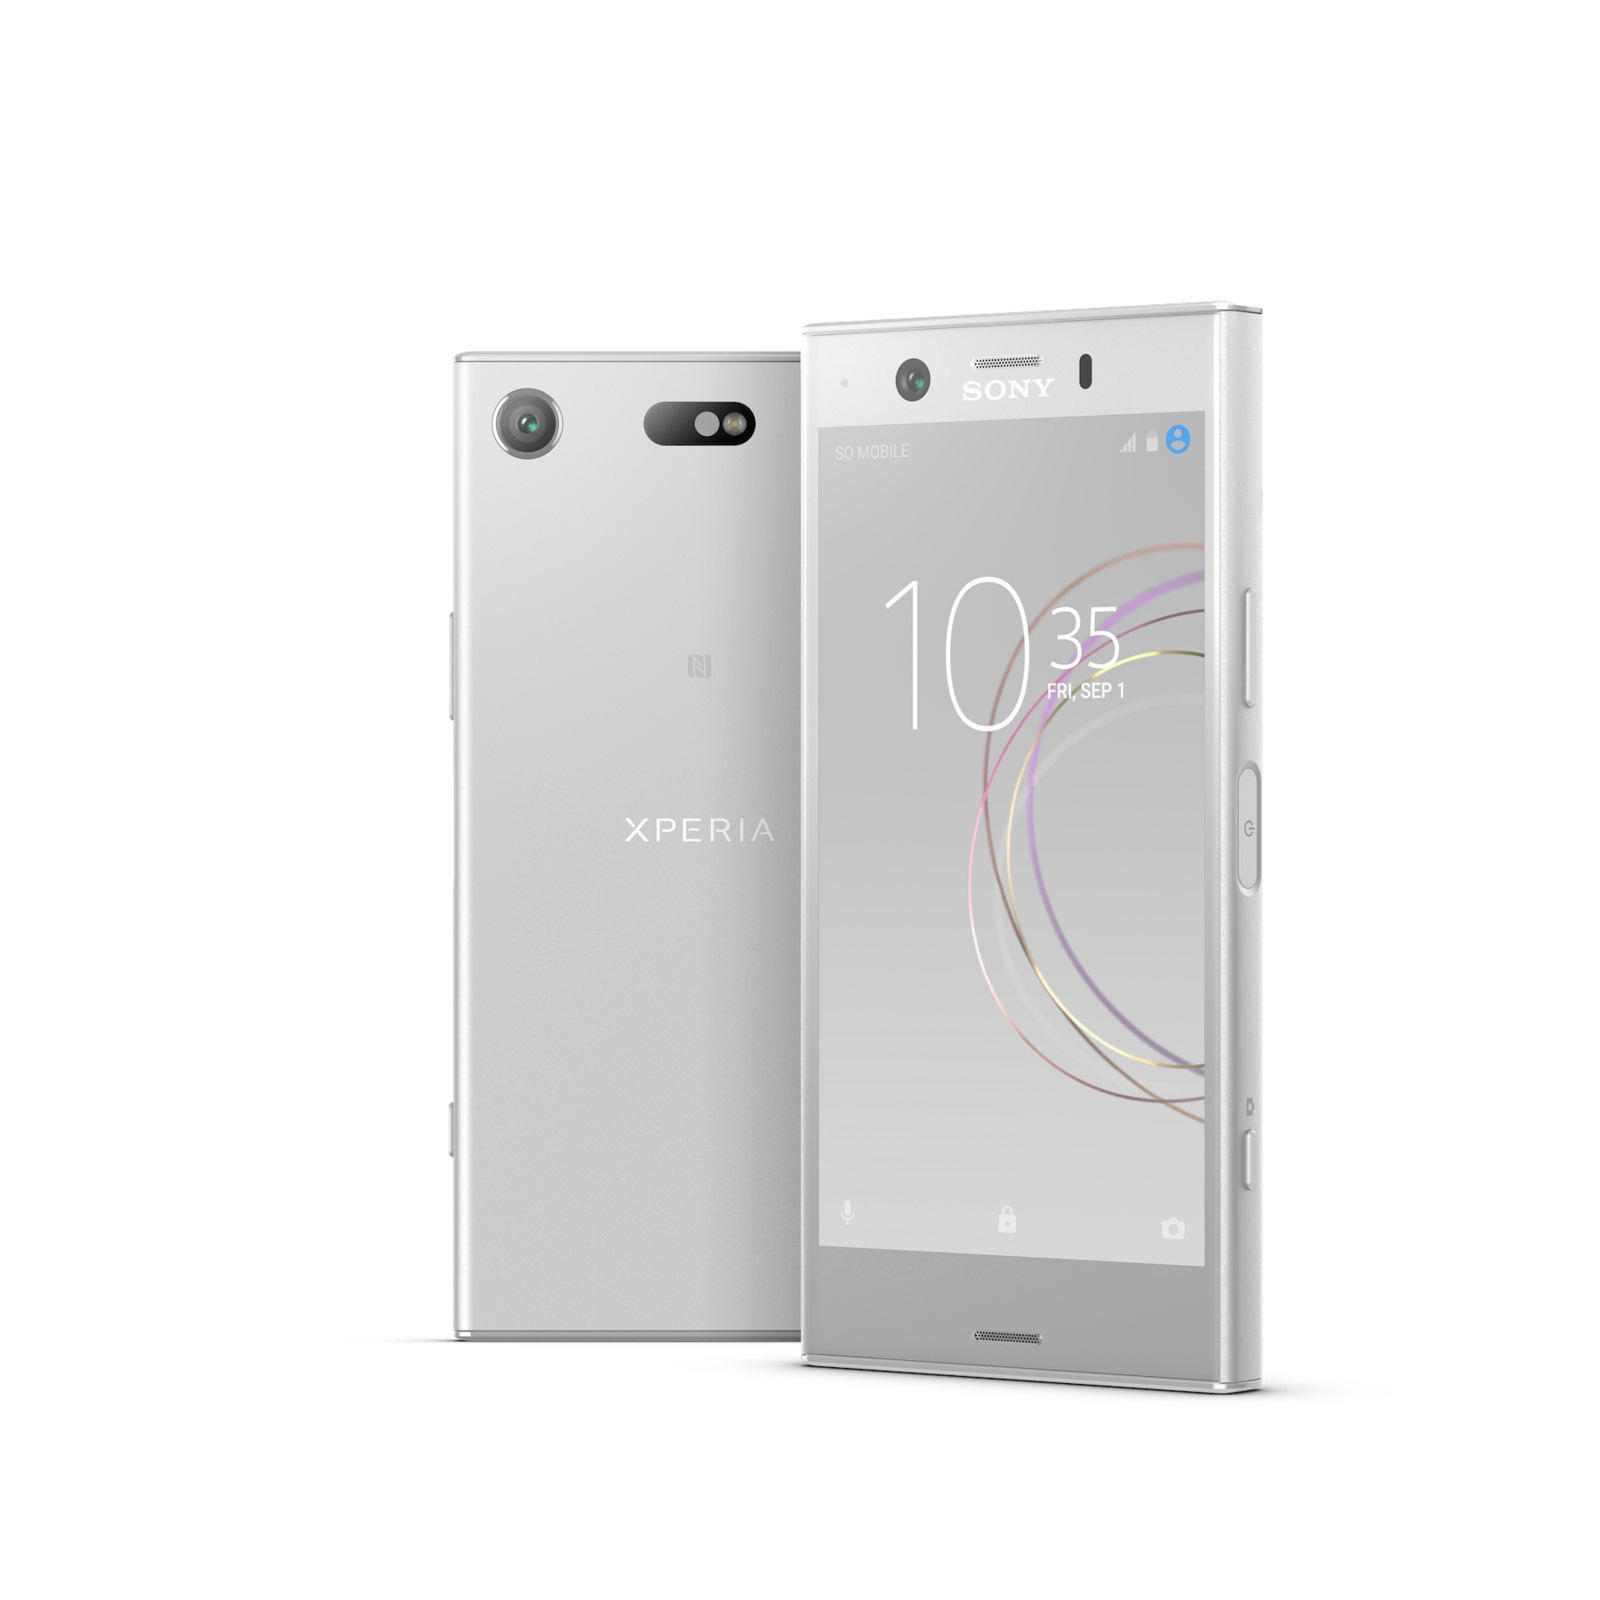 Sony Xperia XZ1 and XZ1 Compact 47 1 A 12 34 update rolling